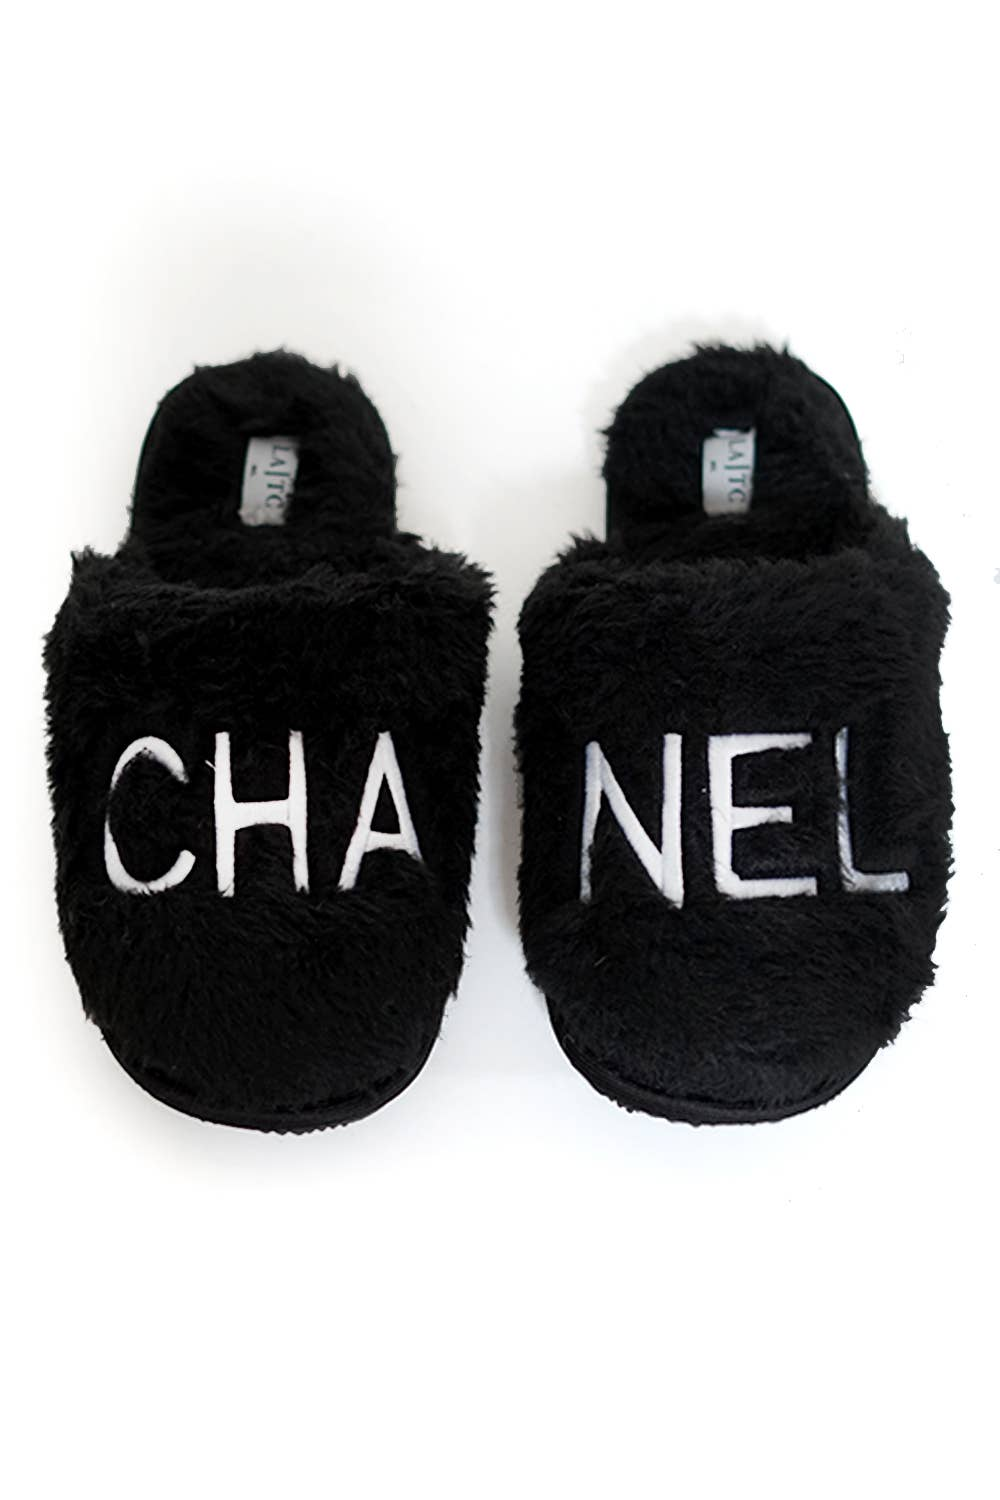 BEL AIR SLIPPERS - Chanel (Black)